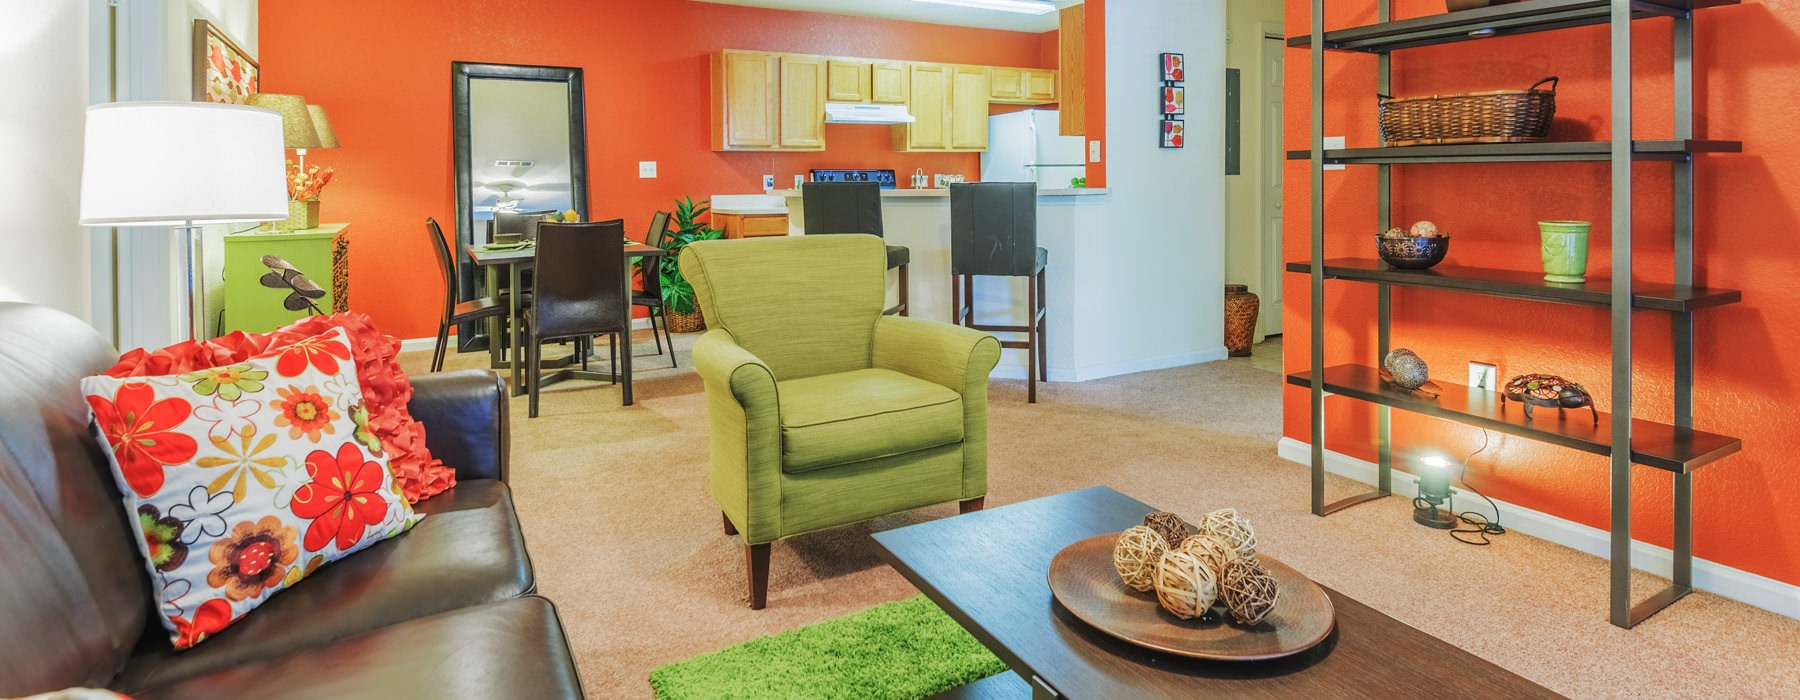 Elizabeth available 1 2 3 bedroom apartments in - 1 bedroom apartment in charlotte nc ...